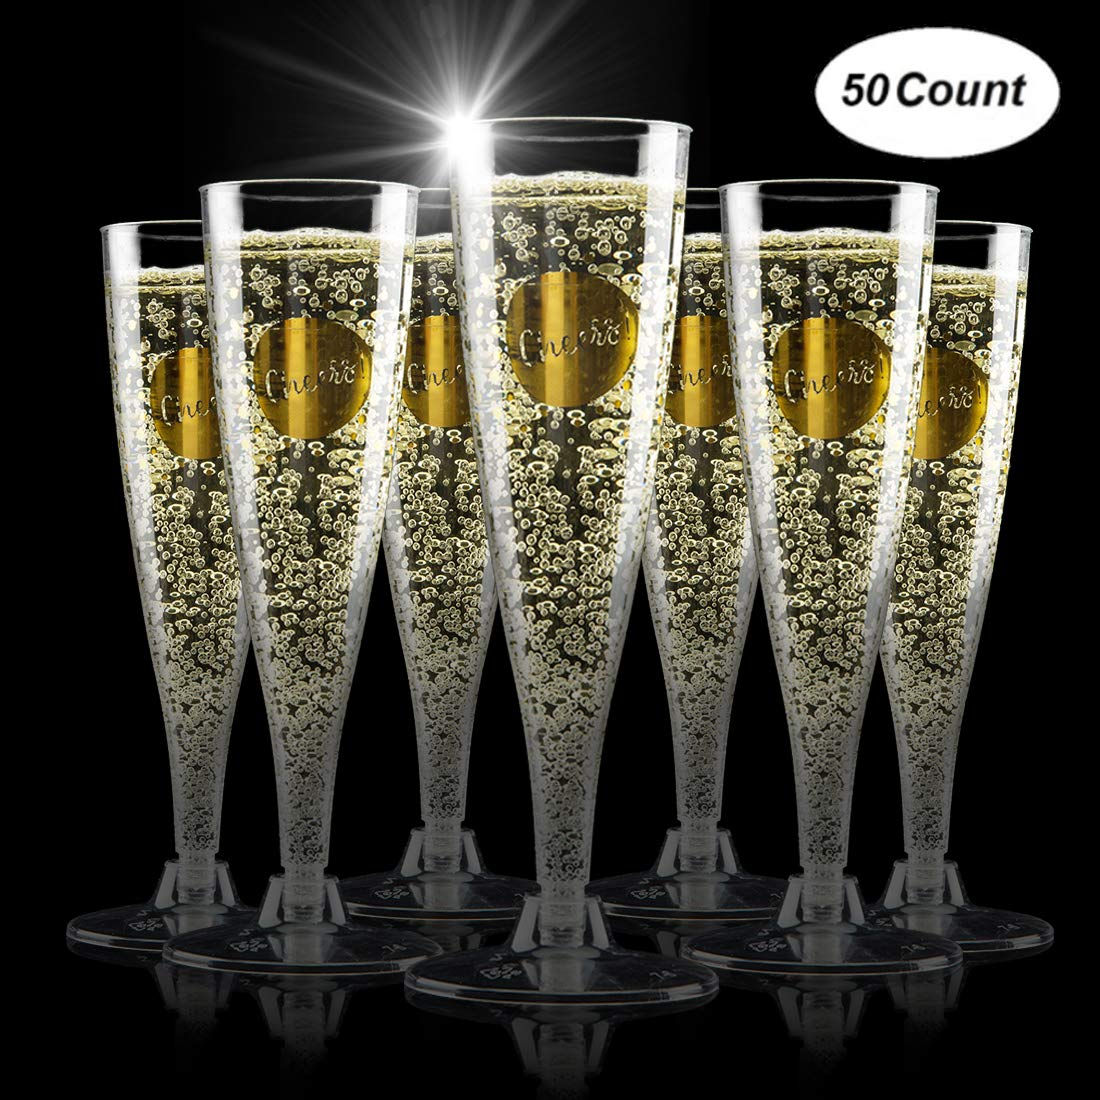 TOYFUL 50 Gold Glitter Plastic Champagne Flutes 5 oz Cheers Disposable Clear Plastic Toasting Glasses Transparent Cocktail Cups Bulk Pack for Wedding and Party (GOLD)